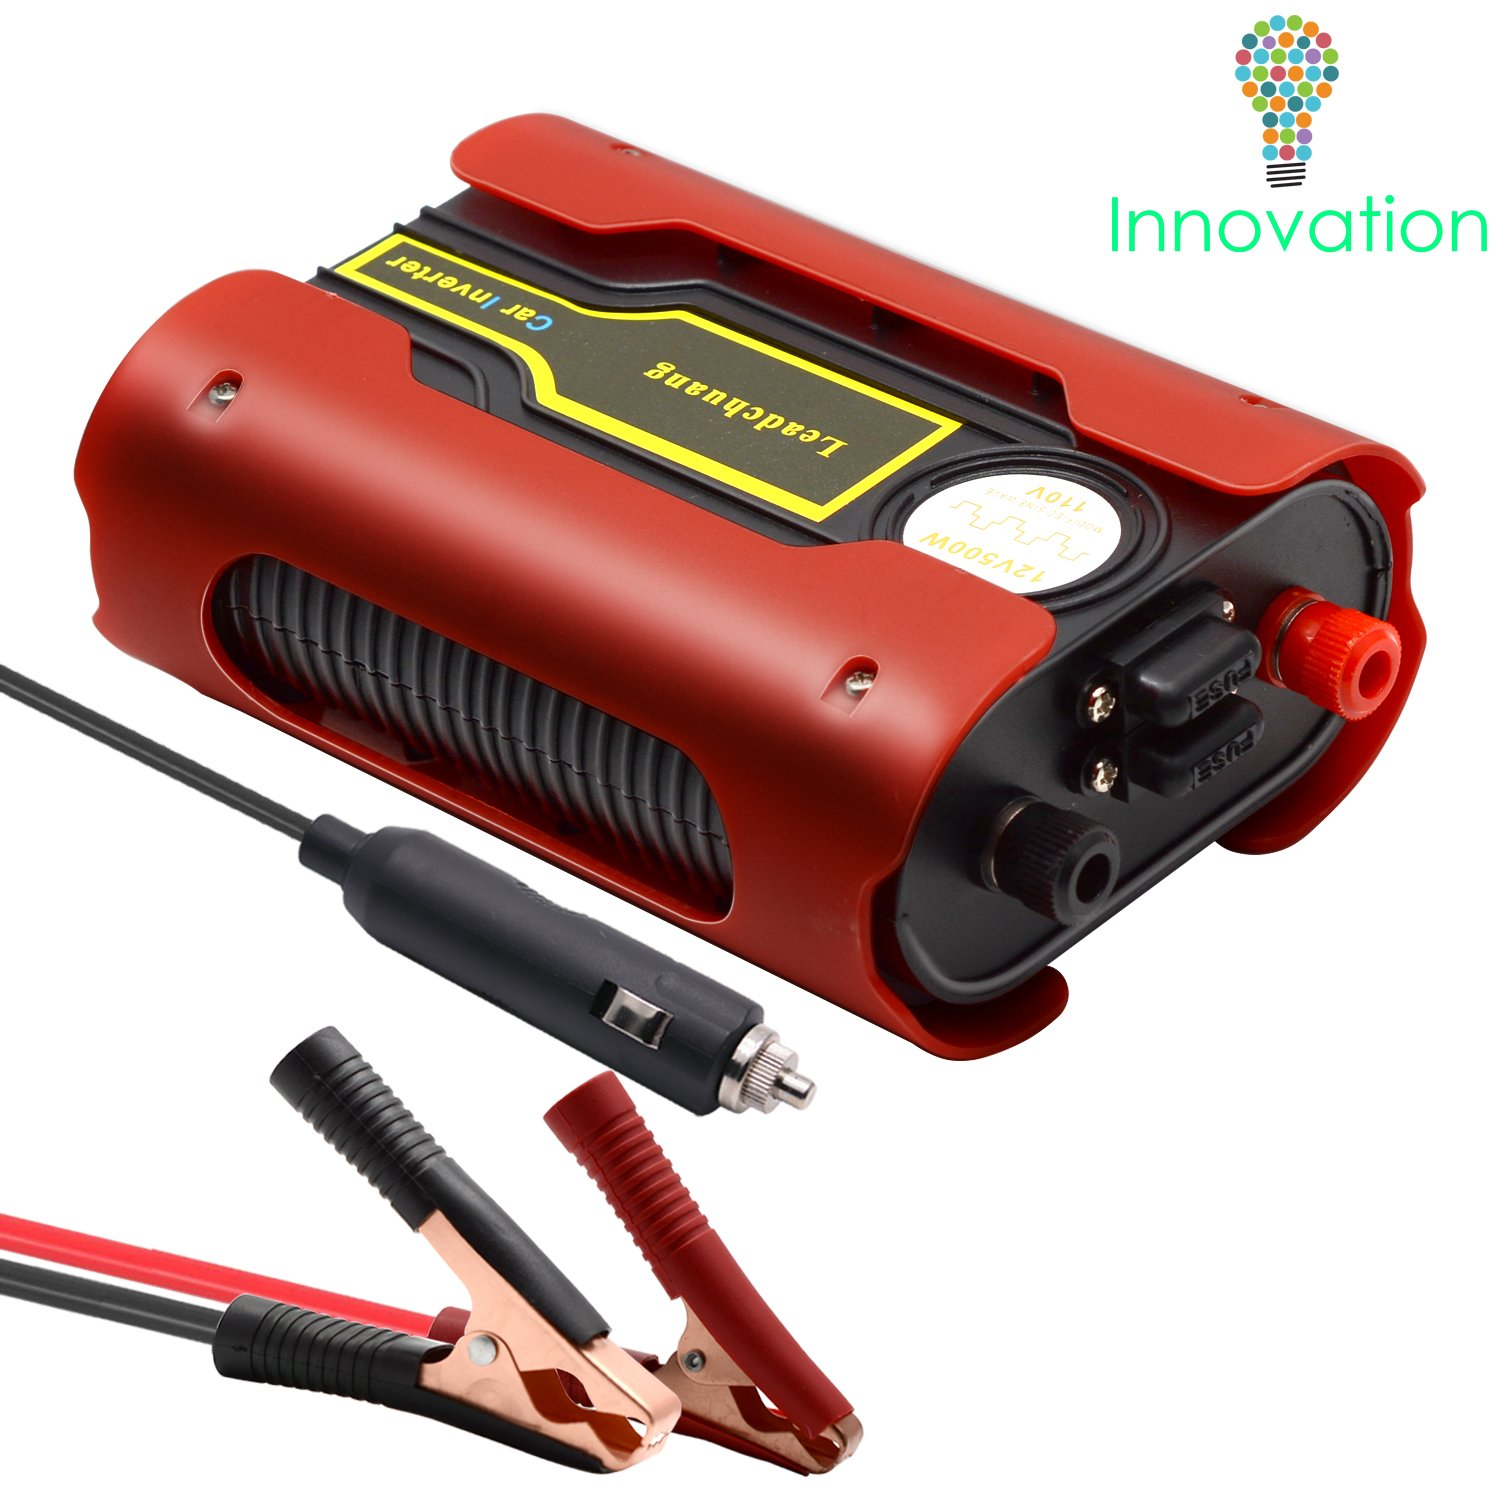 Leadchuang Car Power Inverter 500W Auto Inverter DC to 110 Volts Power Inverter Car Charger 12 Volt Inverter DC to AC Converter for Car with AC Outlet 4.8A Dual USB Charging Ports Alligator Clips …